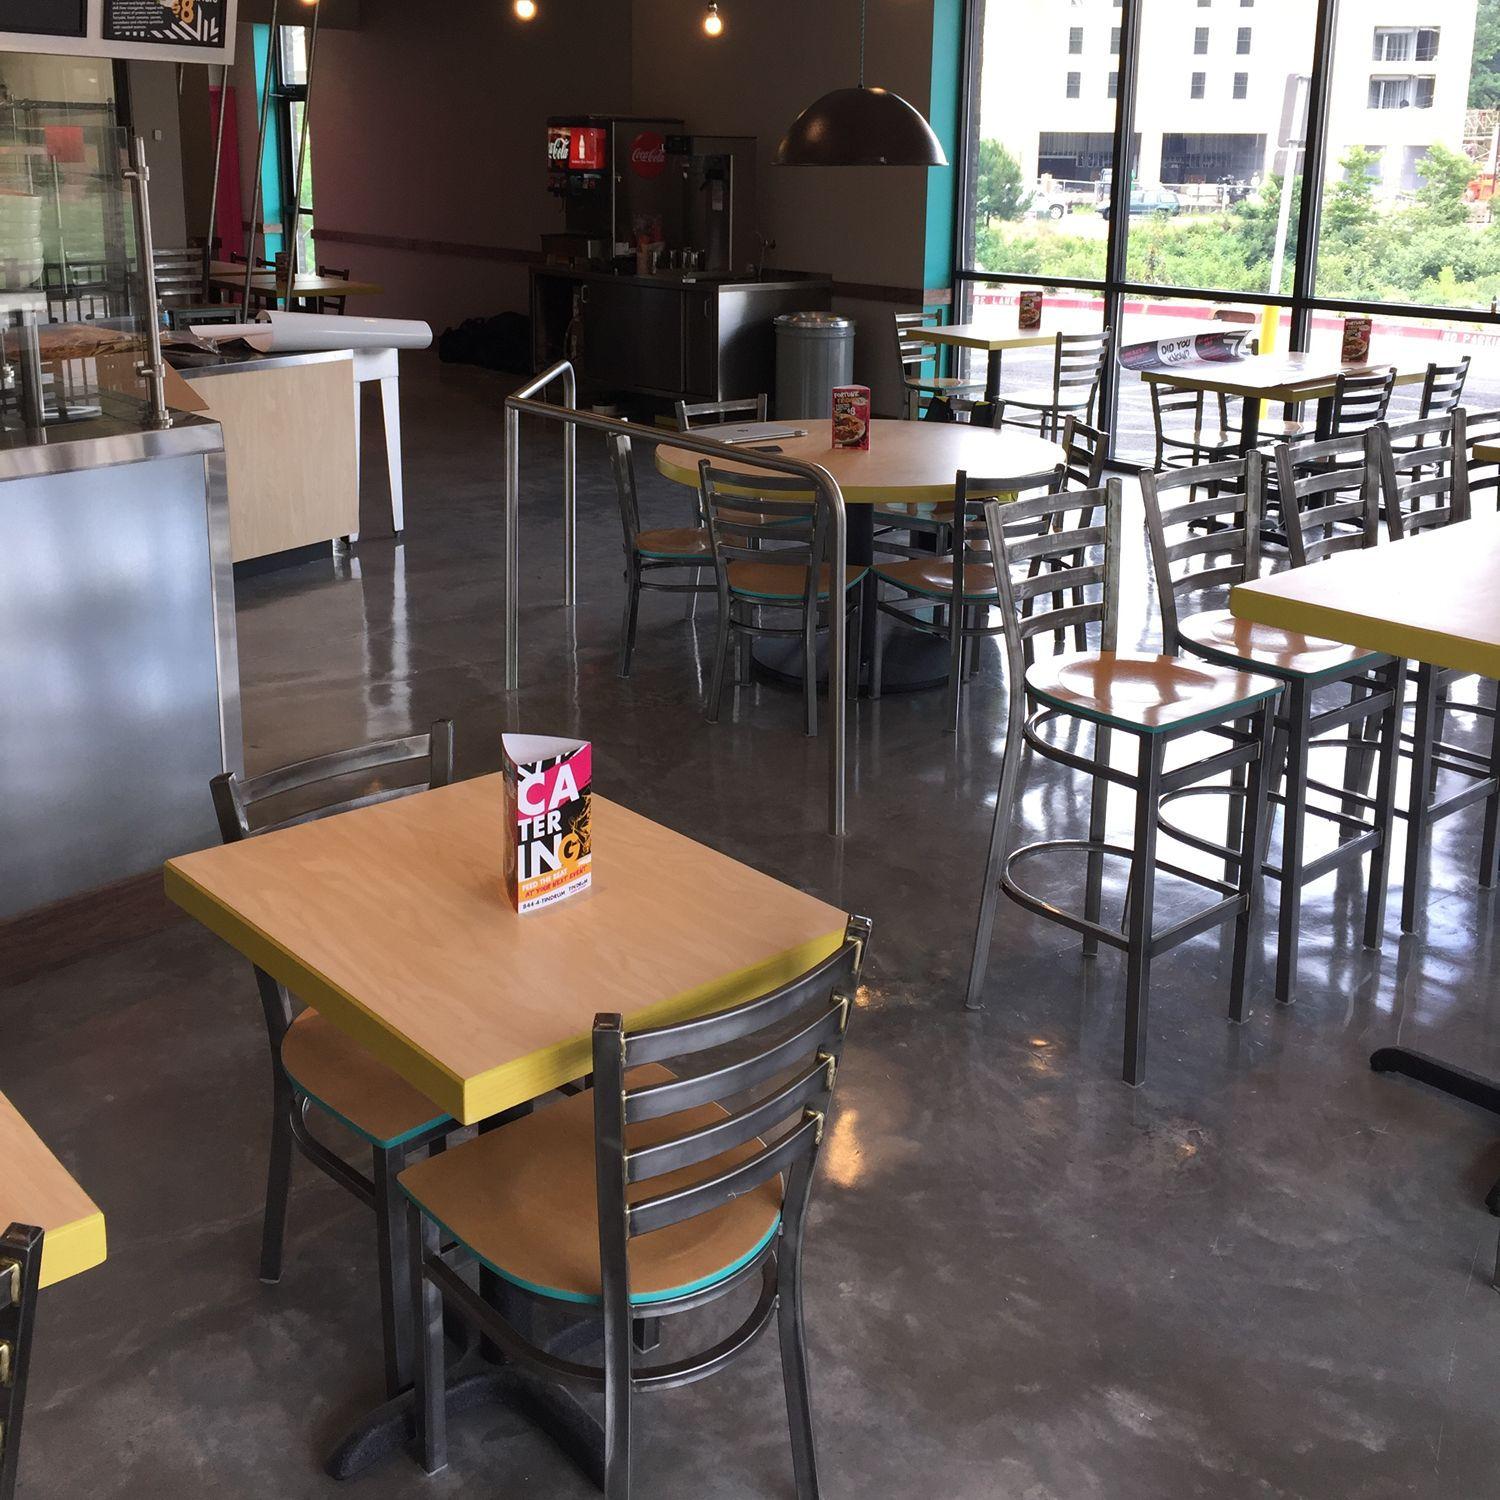 Tin Drum Asian Kitchen To Open First Johns Creek Location